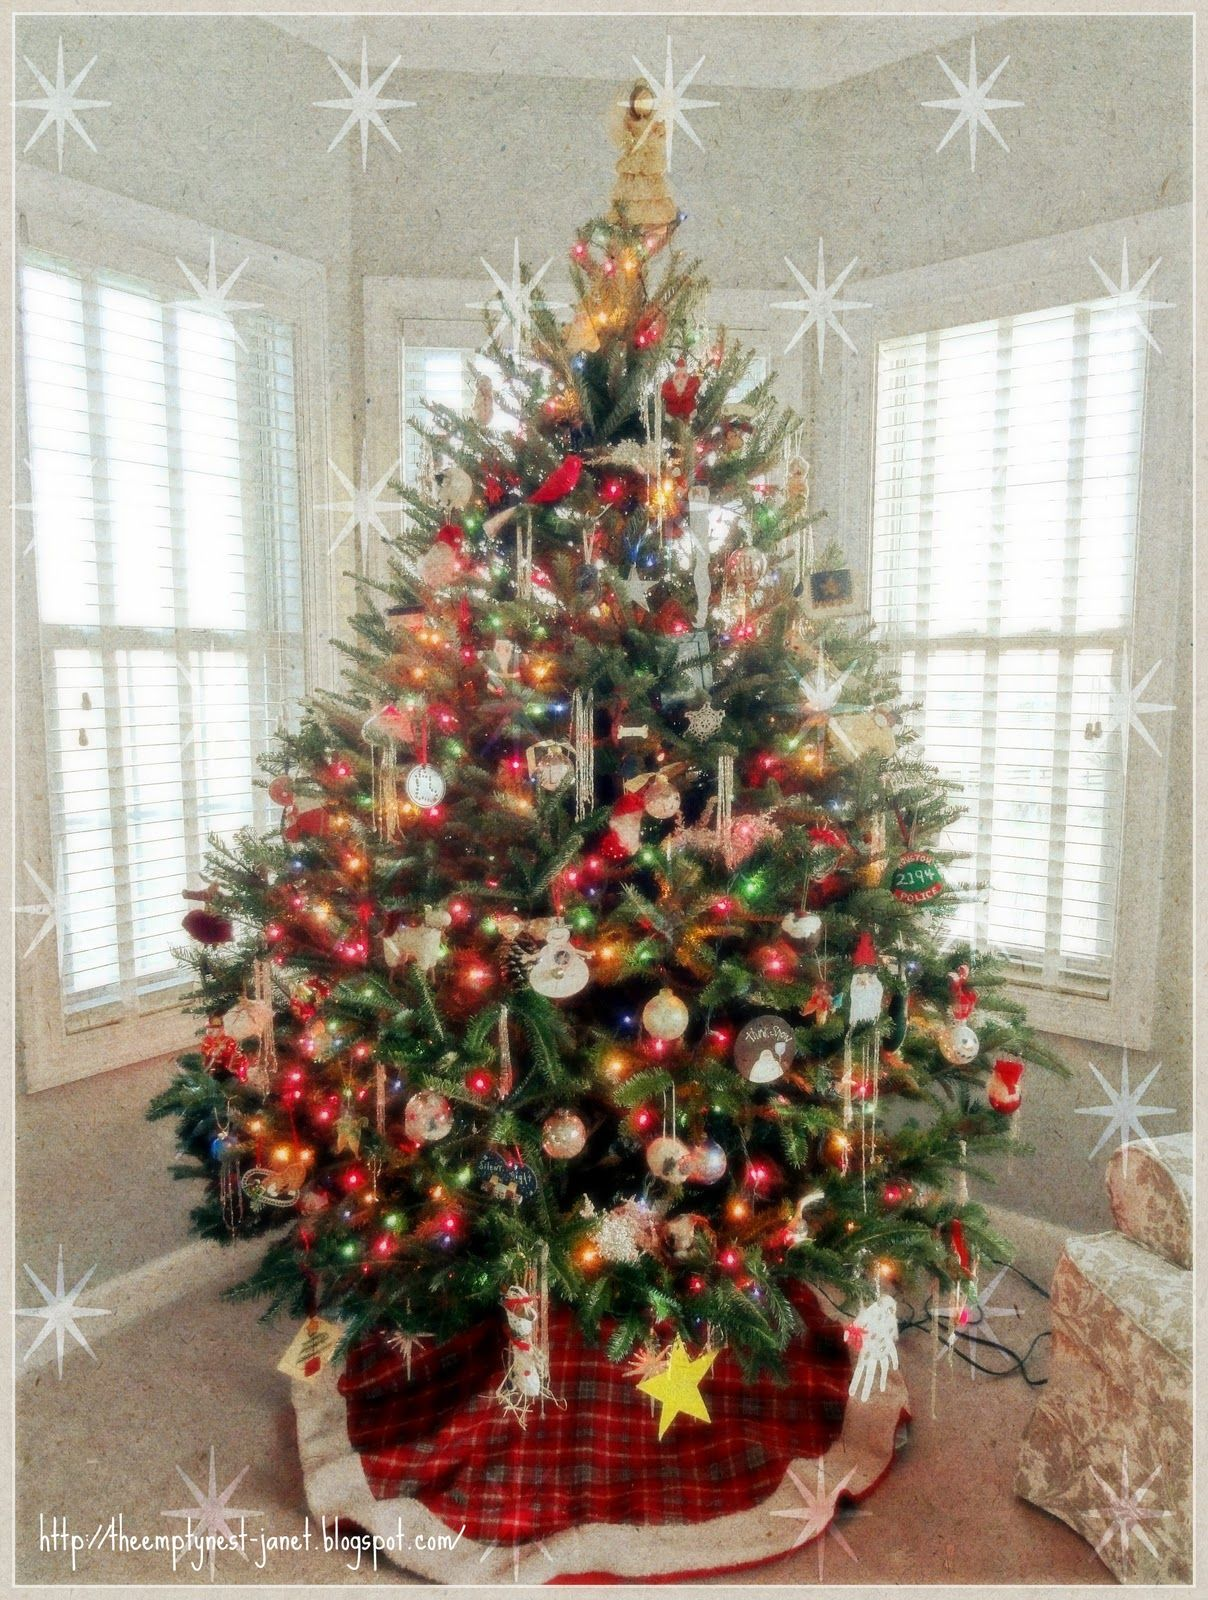 Christmas Tree Decorations Awesome Old Fashioned Christmas Decorations Vintage Christmas Decorations Traditional Christmas Tree